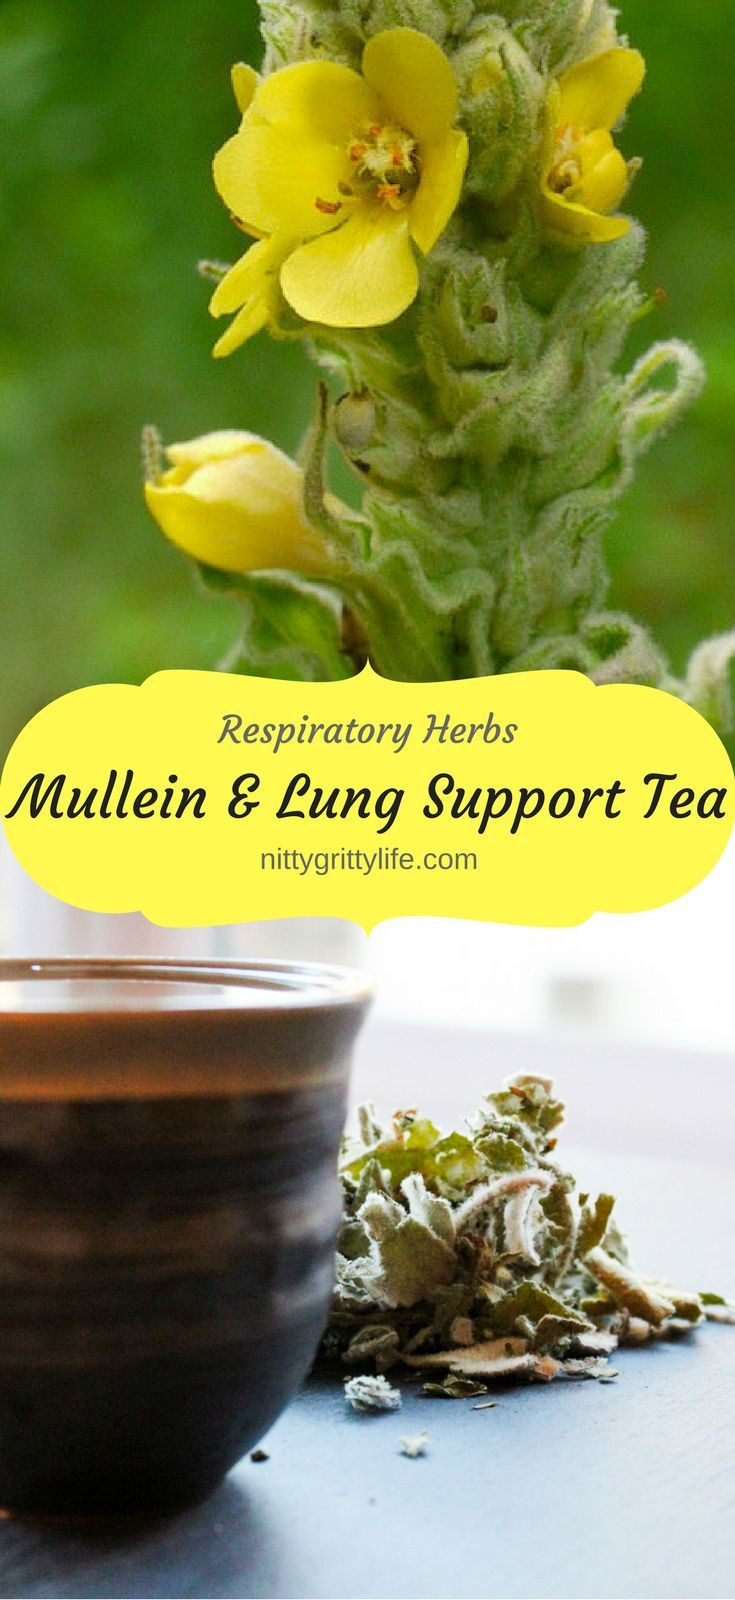 Mullein & Lung Support Tea